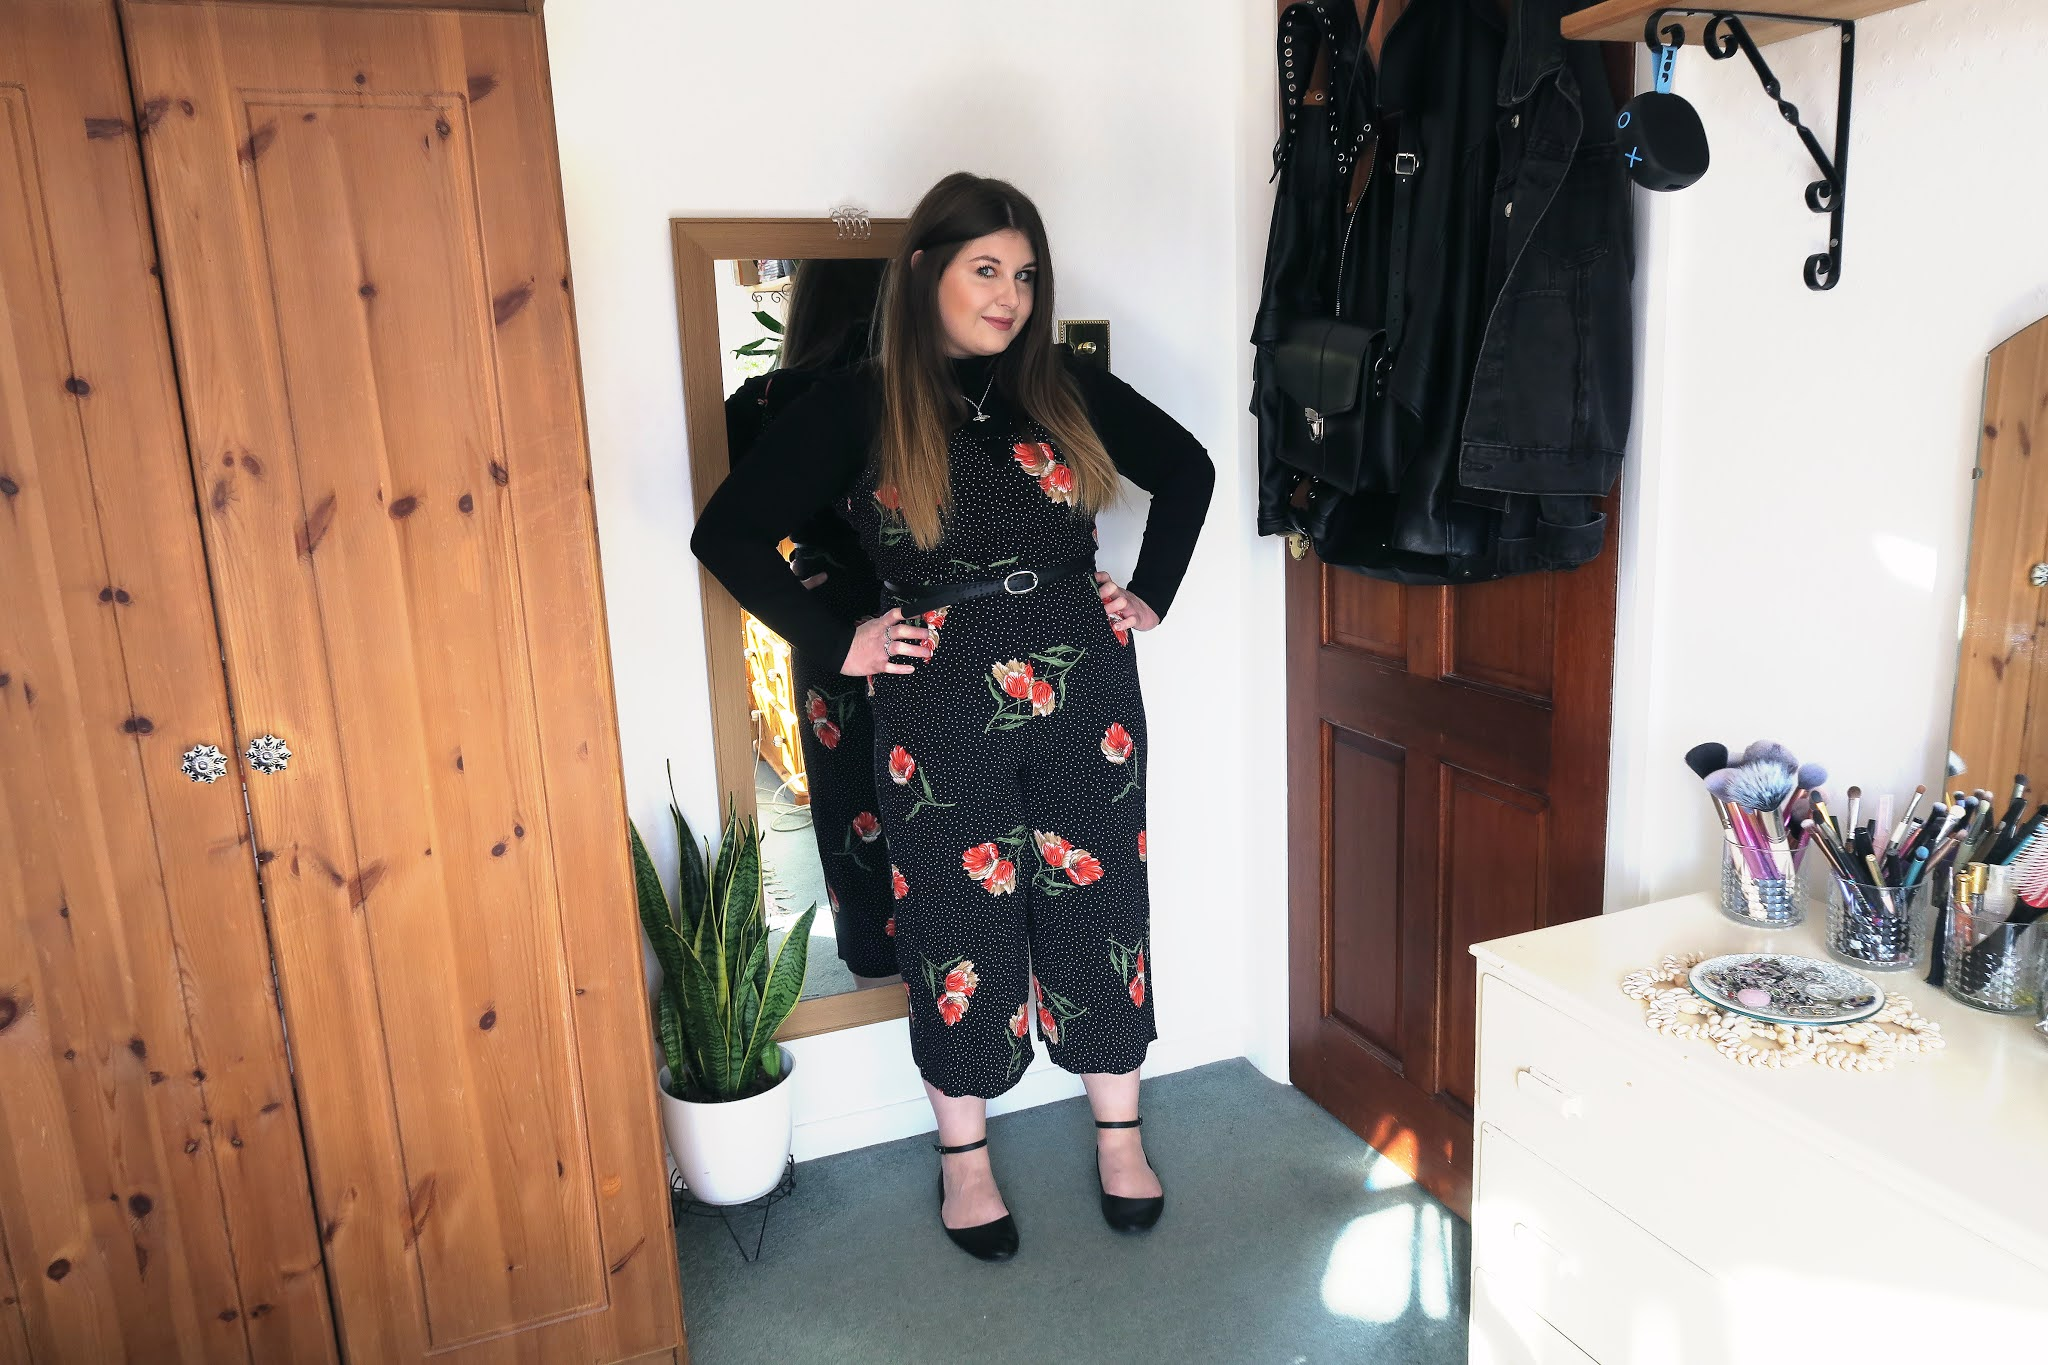 Grace is wearing a black roll neck top underneath a long black and red floral playsuit.